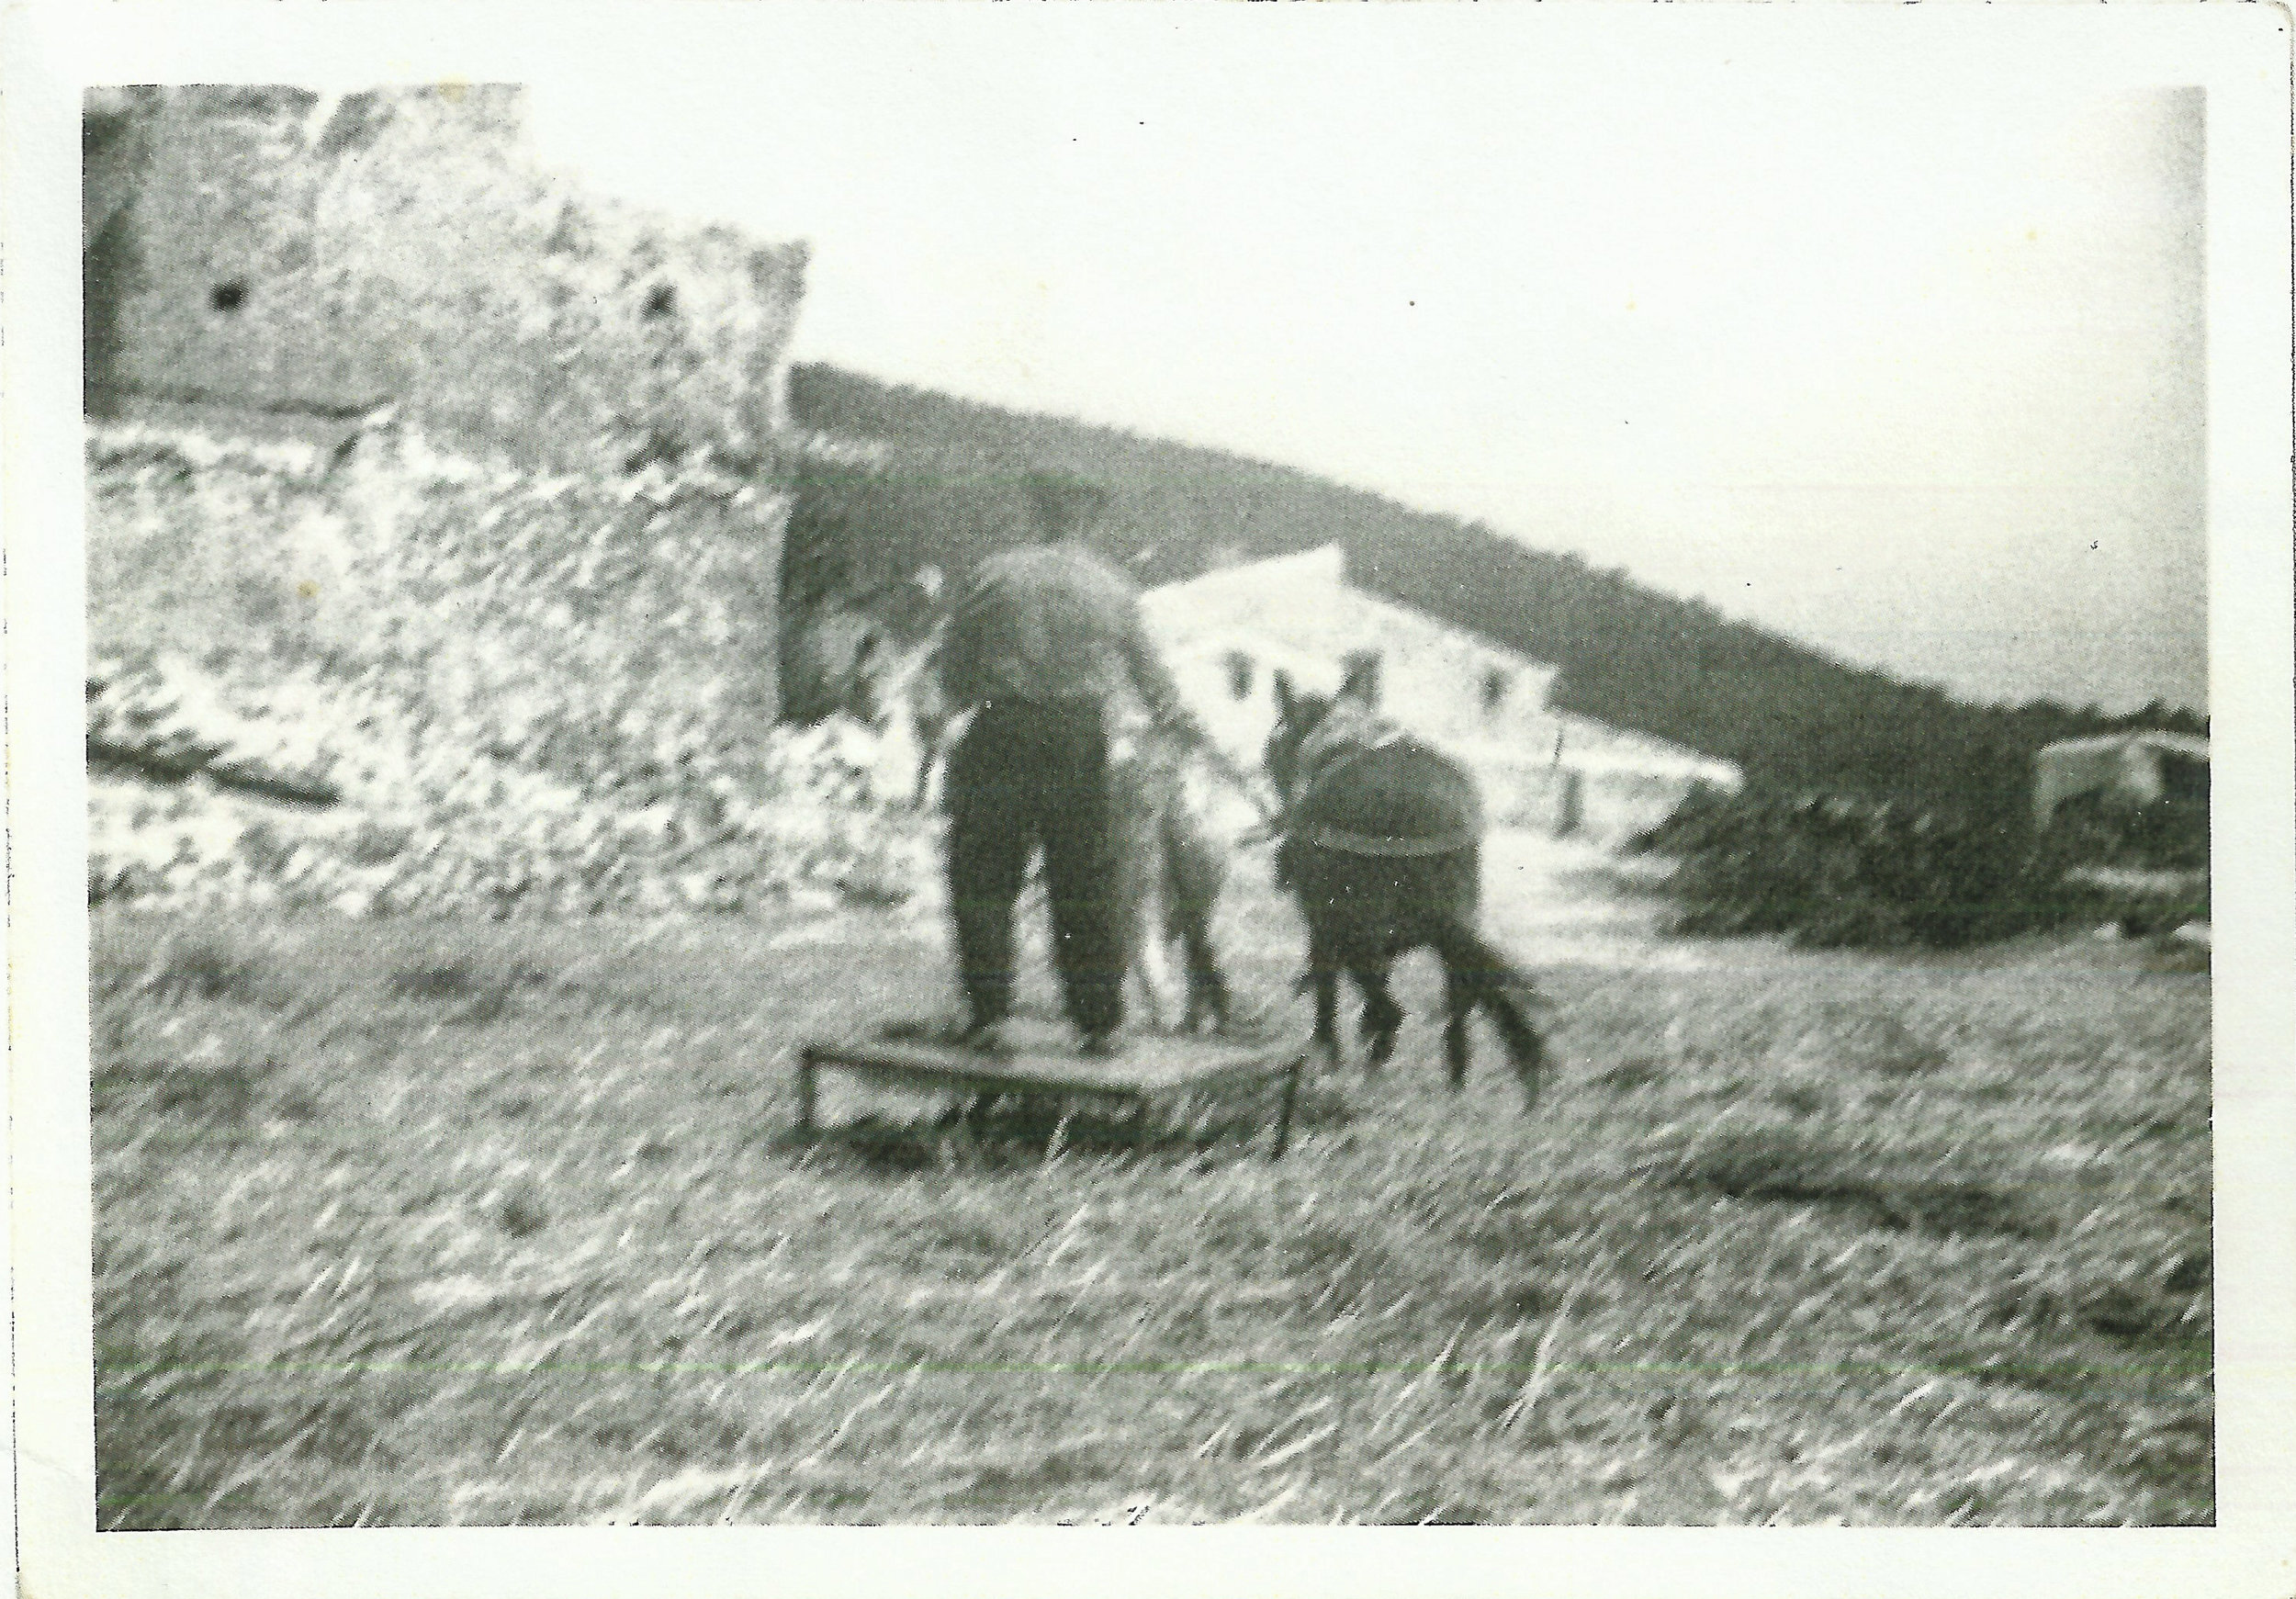 Gázquez family member using a trillilo to thresh wheat. Late 1960's